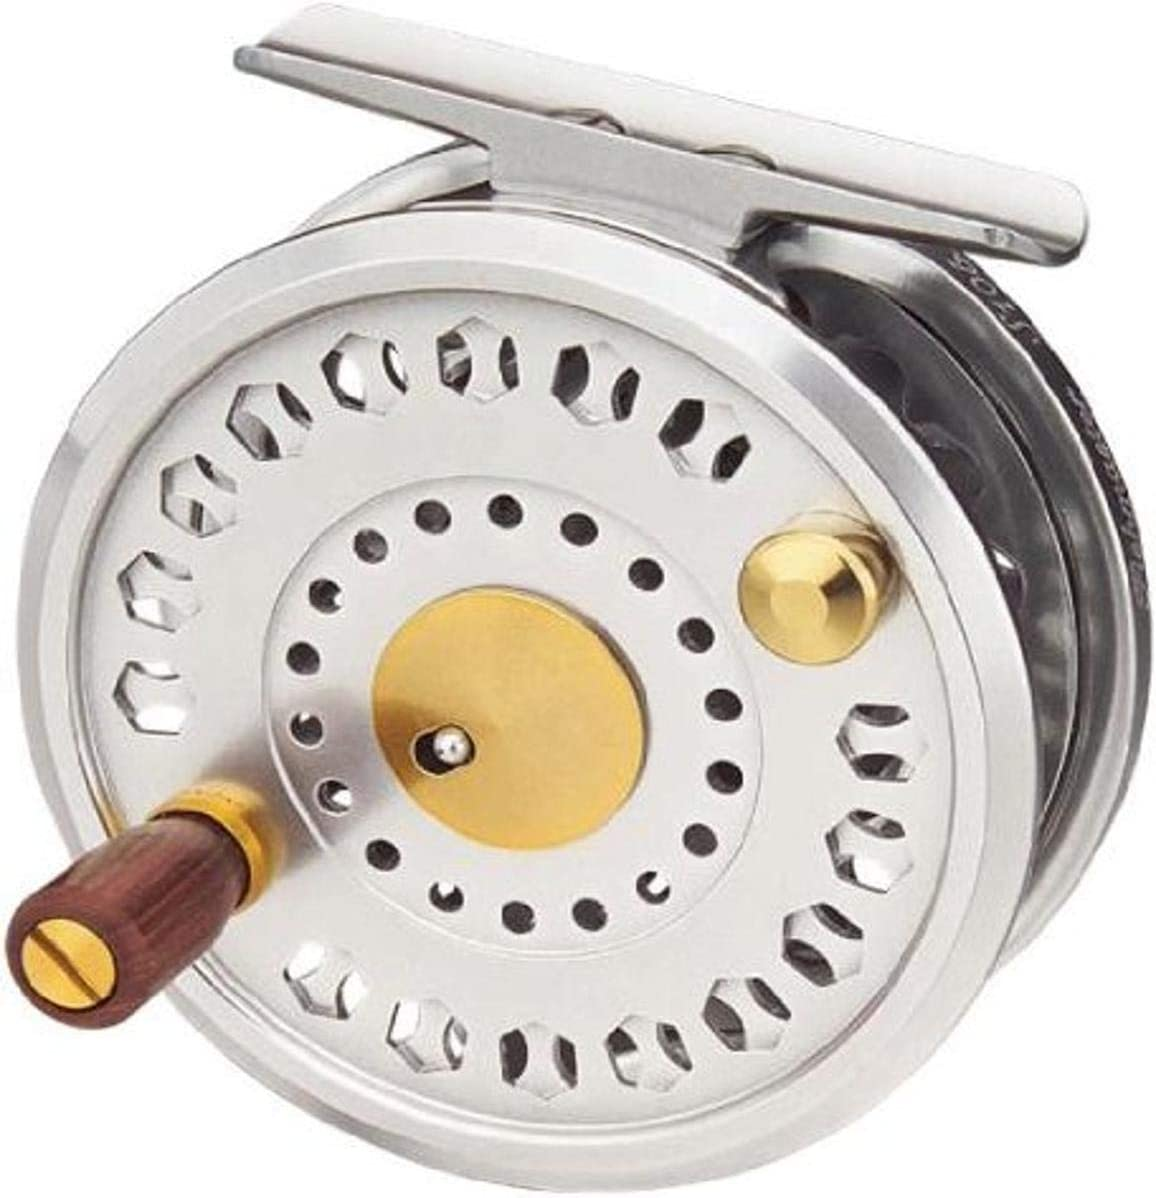 Tica Fishmaster S-Series Fly Reels